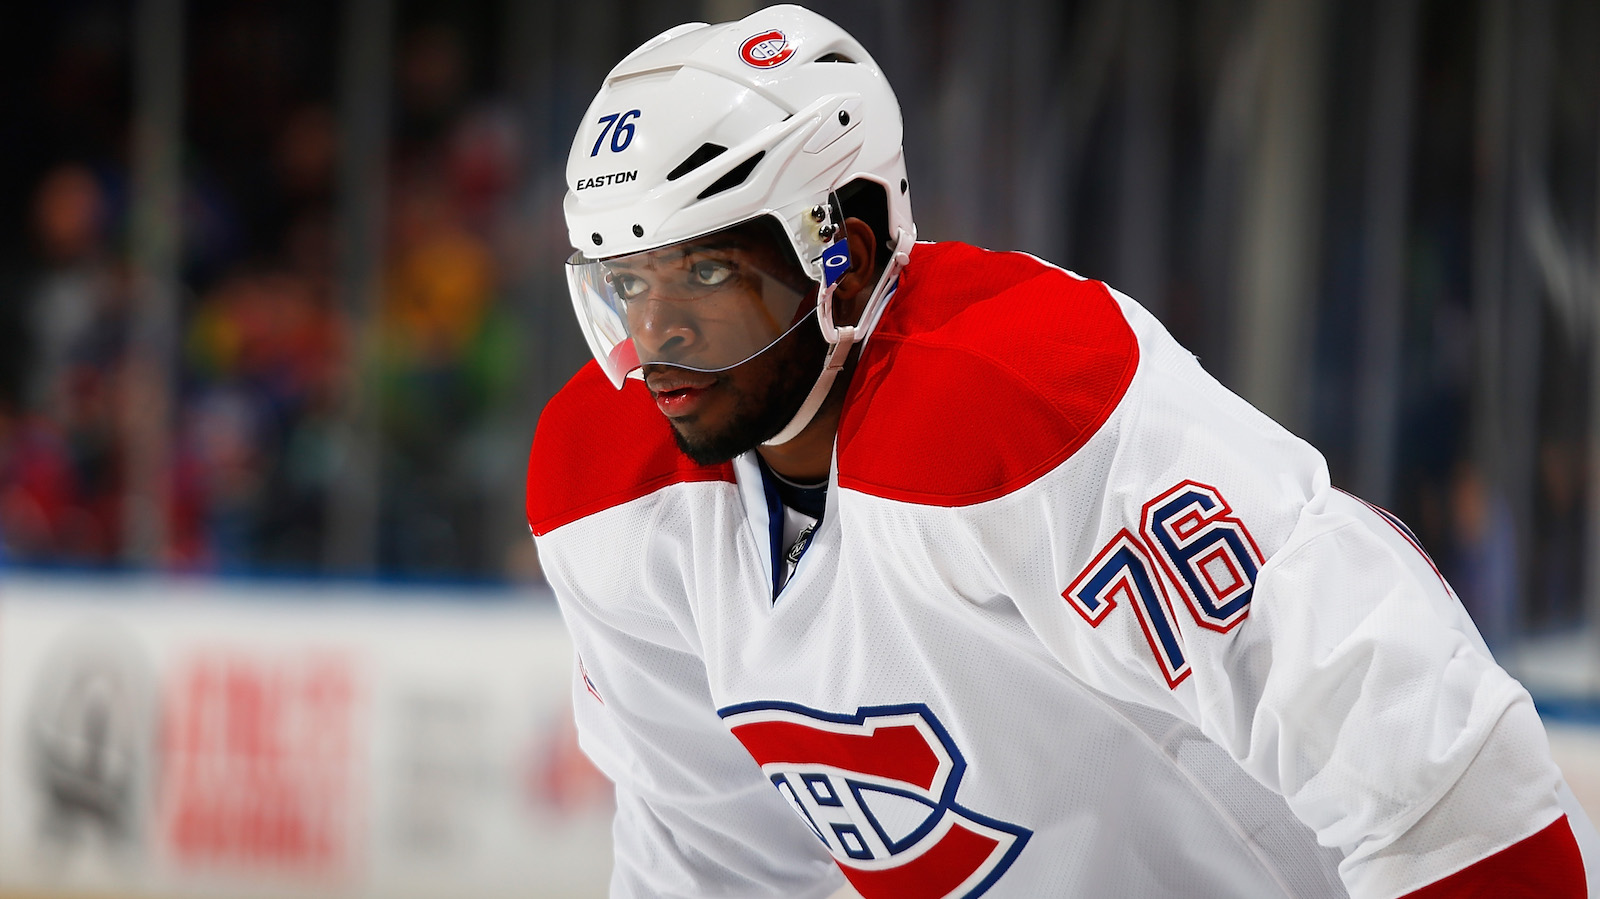 Angry Canadiens fan protests P.K. Subban trade with full page newspaper ad